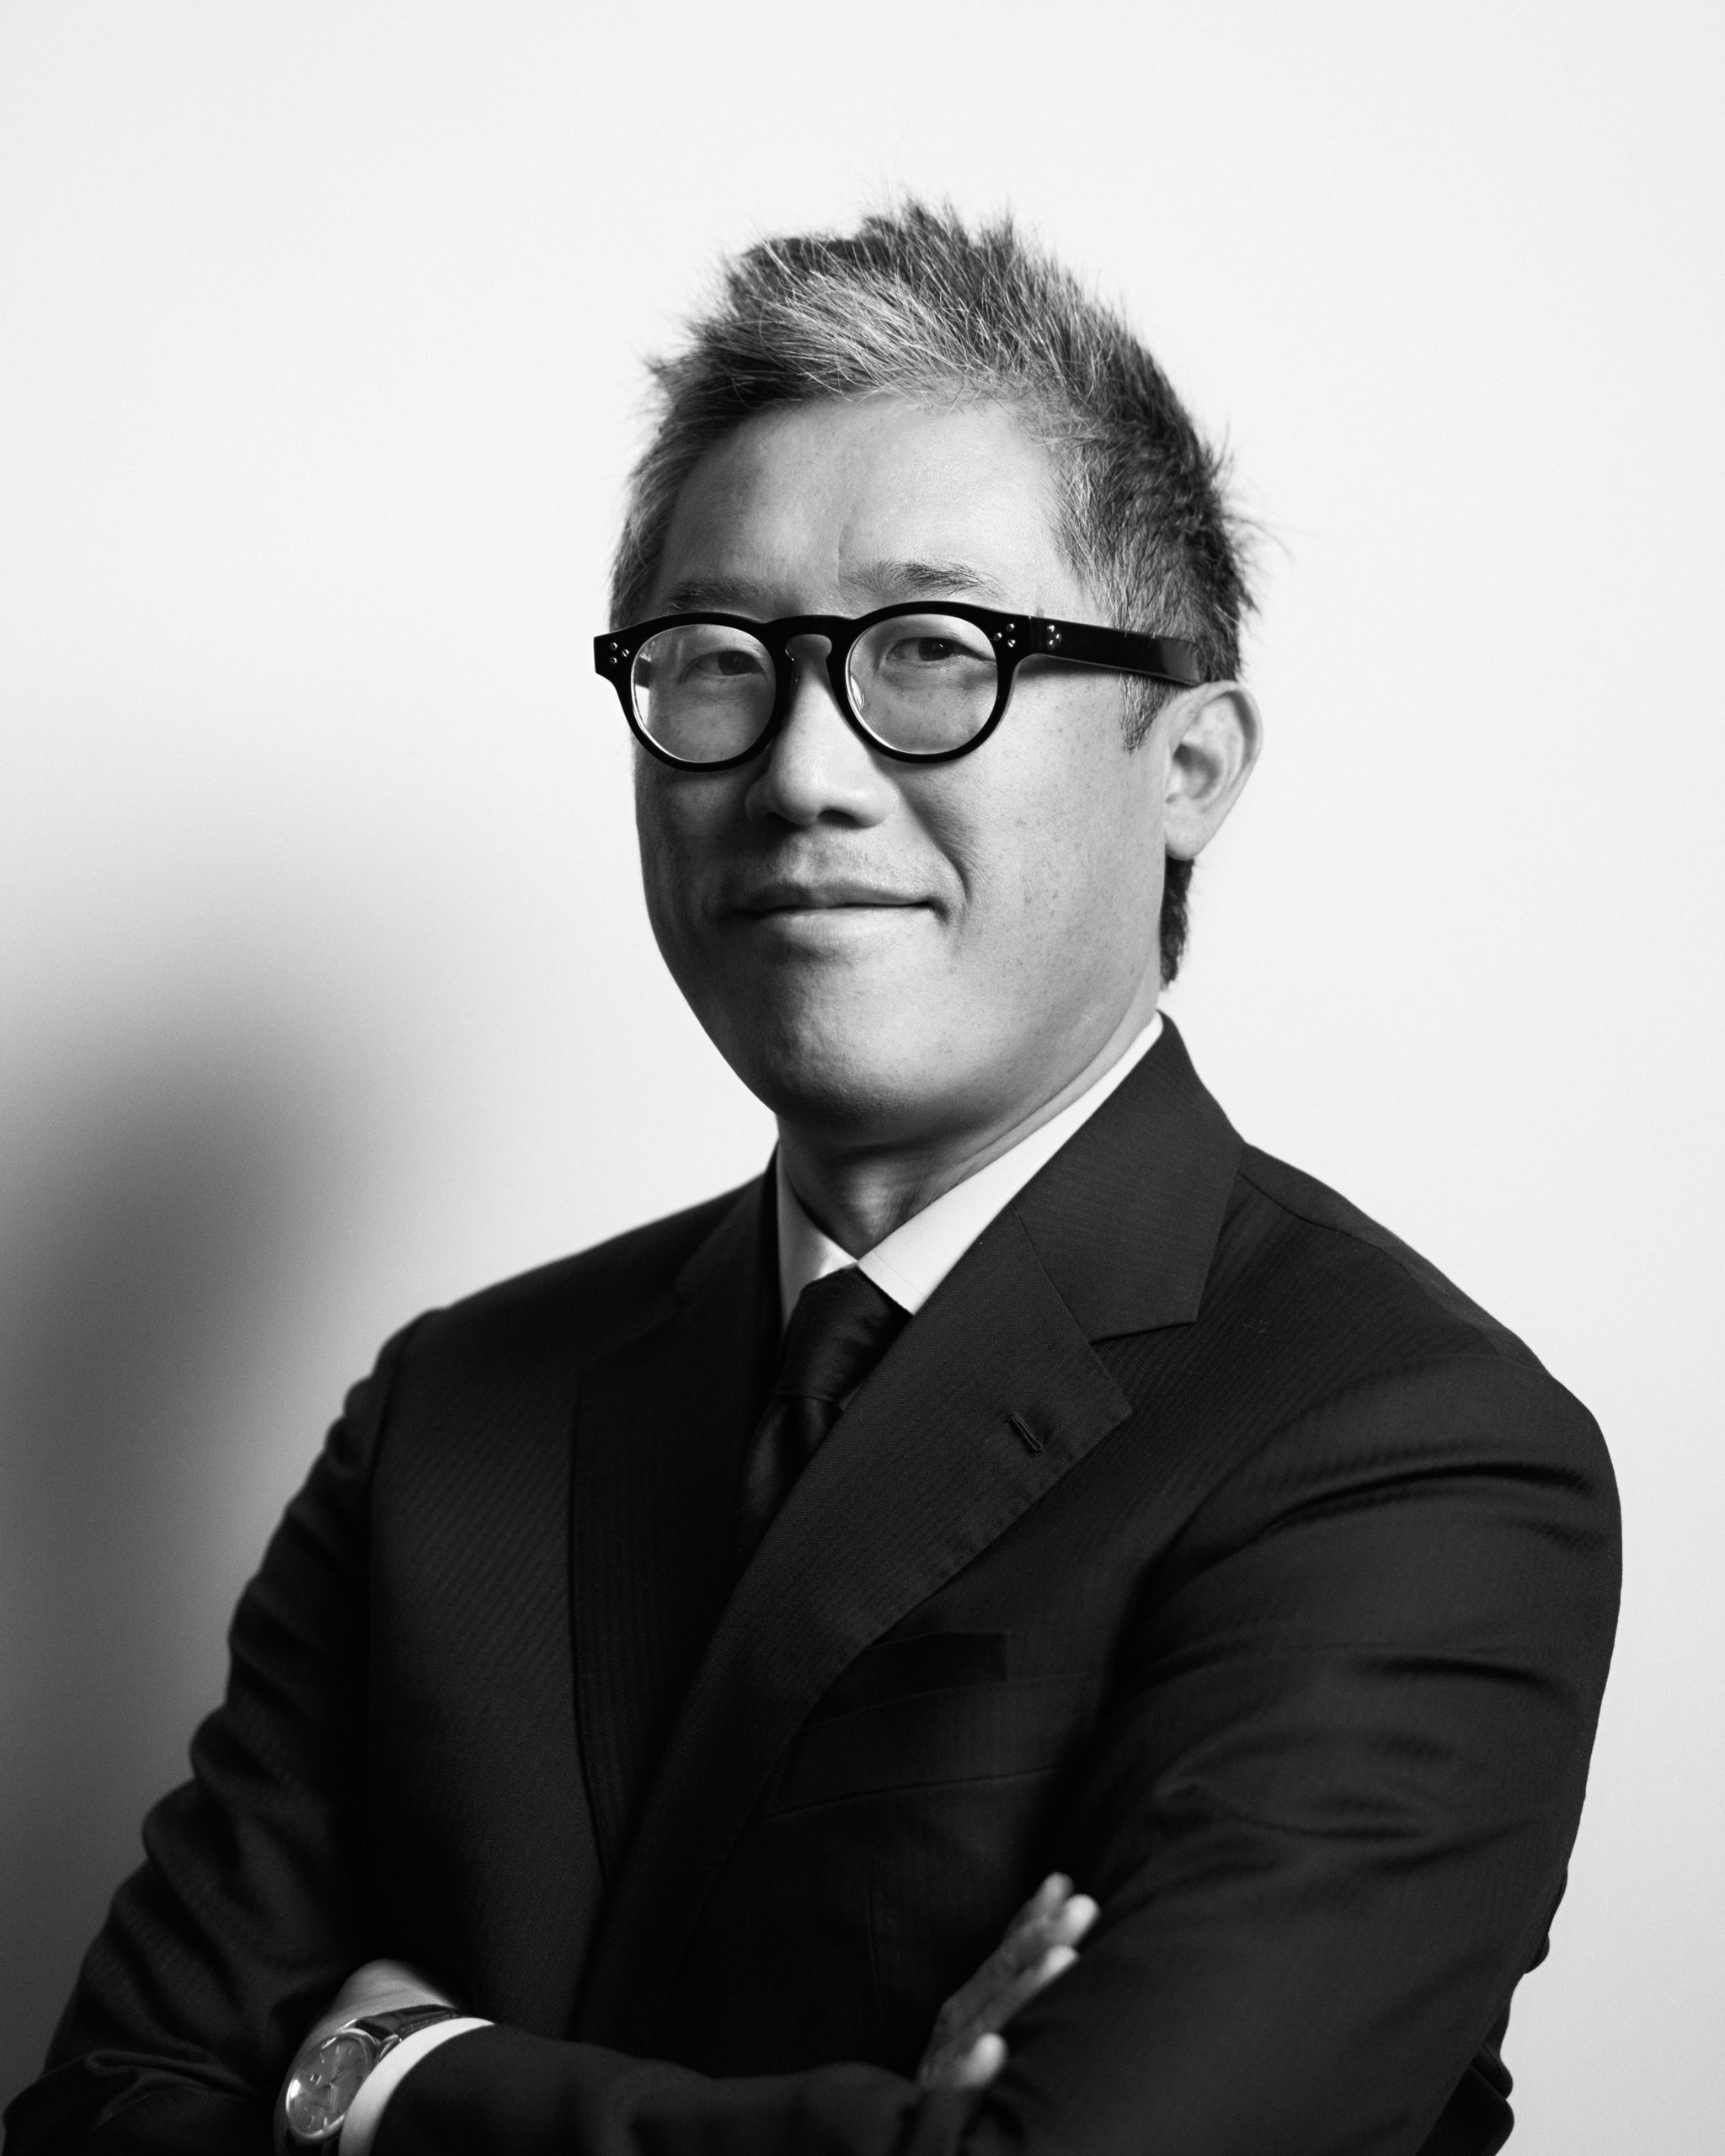 Mark Lee. Image by  Eric Staudenmaier, courtesy of Harvard Graduate School of Design